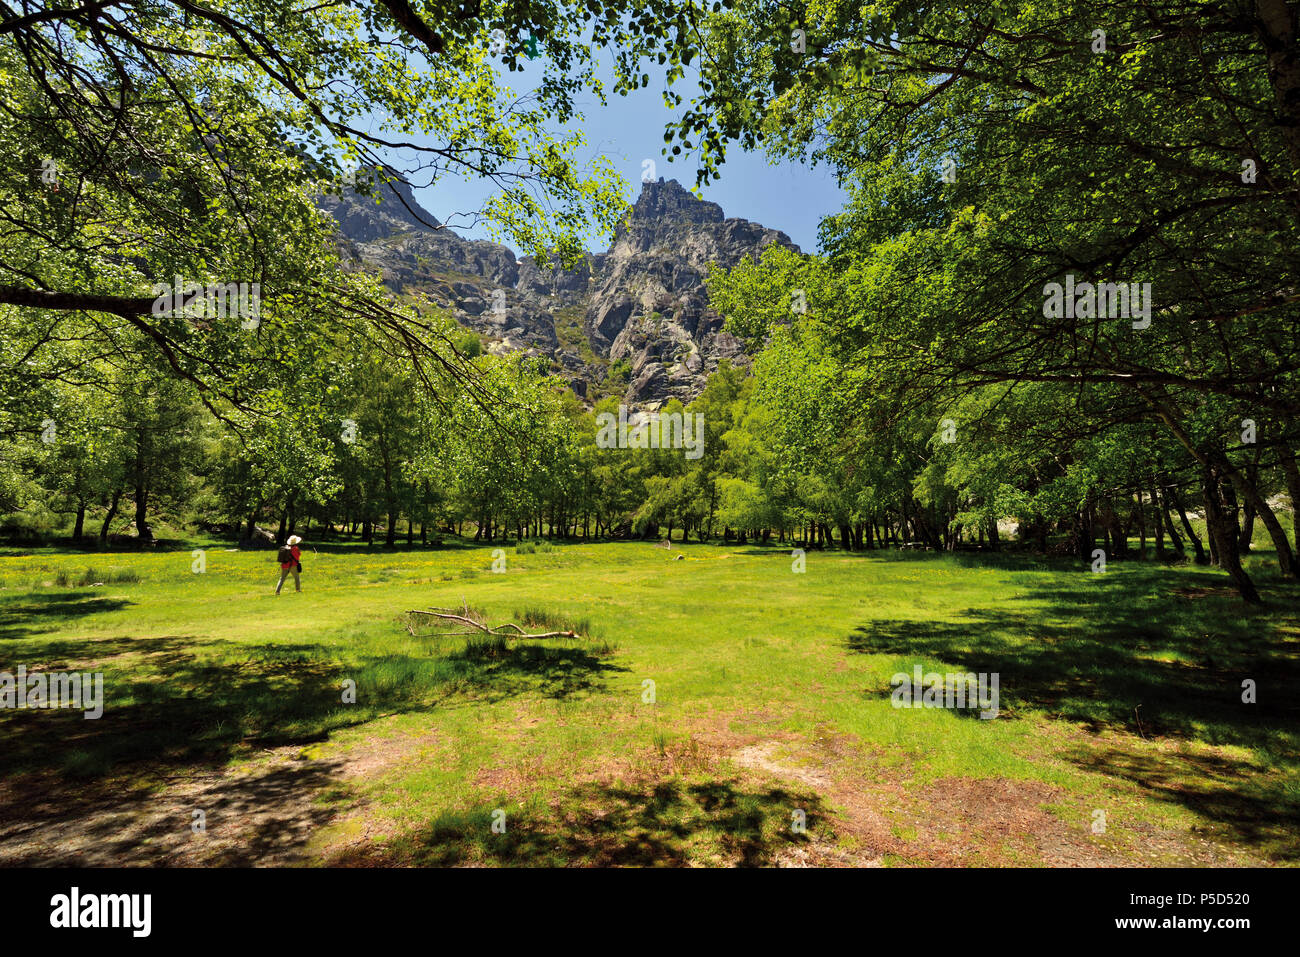 Woman walking in a open field surrounded by mountain pics and trees - Stock Image